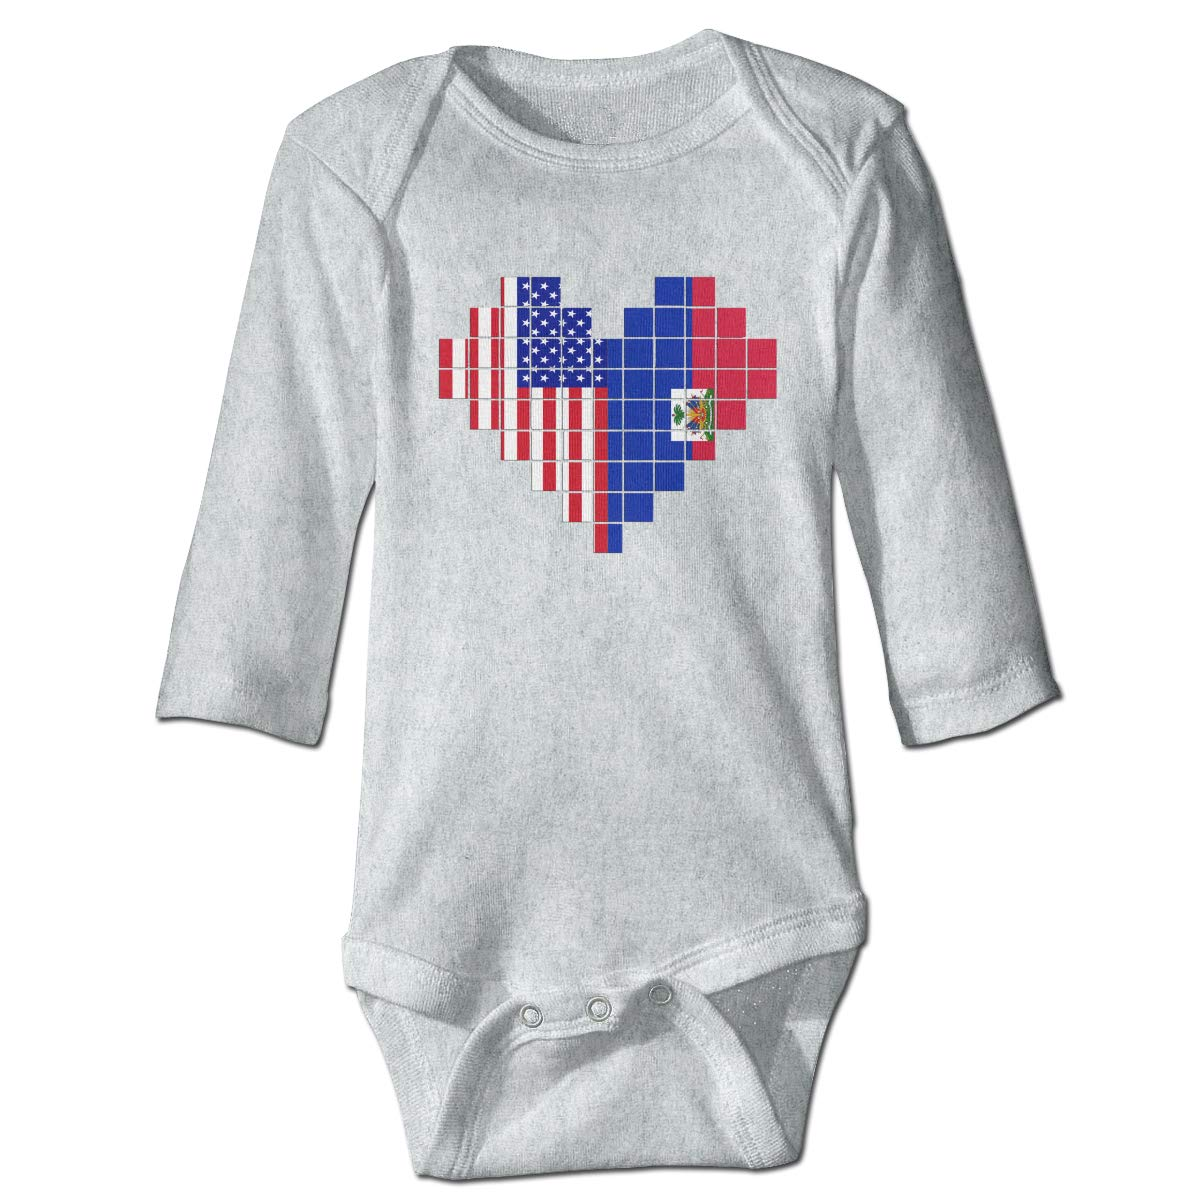 A14UBP Baby Infant Toddler Long Sleeve Climb Jumpsuit American Flag Haiti Flag Puzzle Heart Playsuit Outfit Clothes